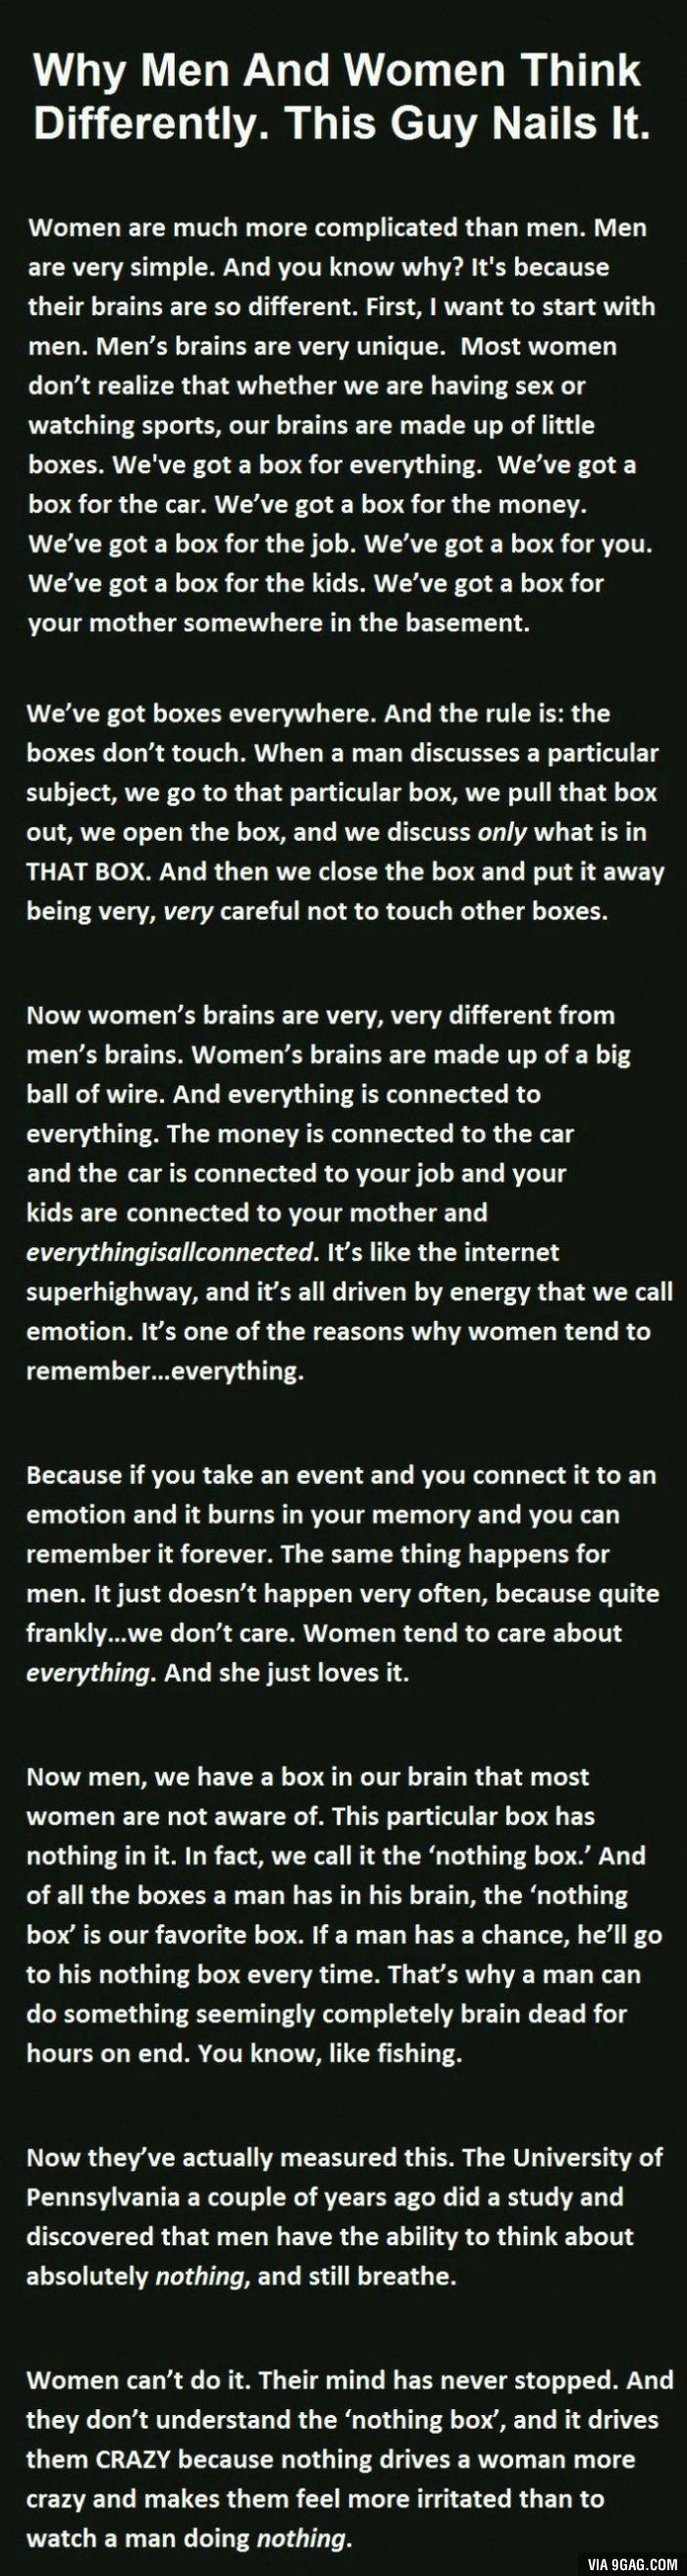 Why men and women think differently - 9GAG - I actually learned about this in training a few years back and yes it drives me crazy men have a nothing box while my mind is constantly going